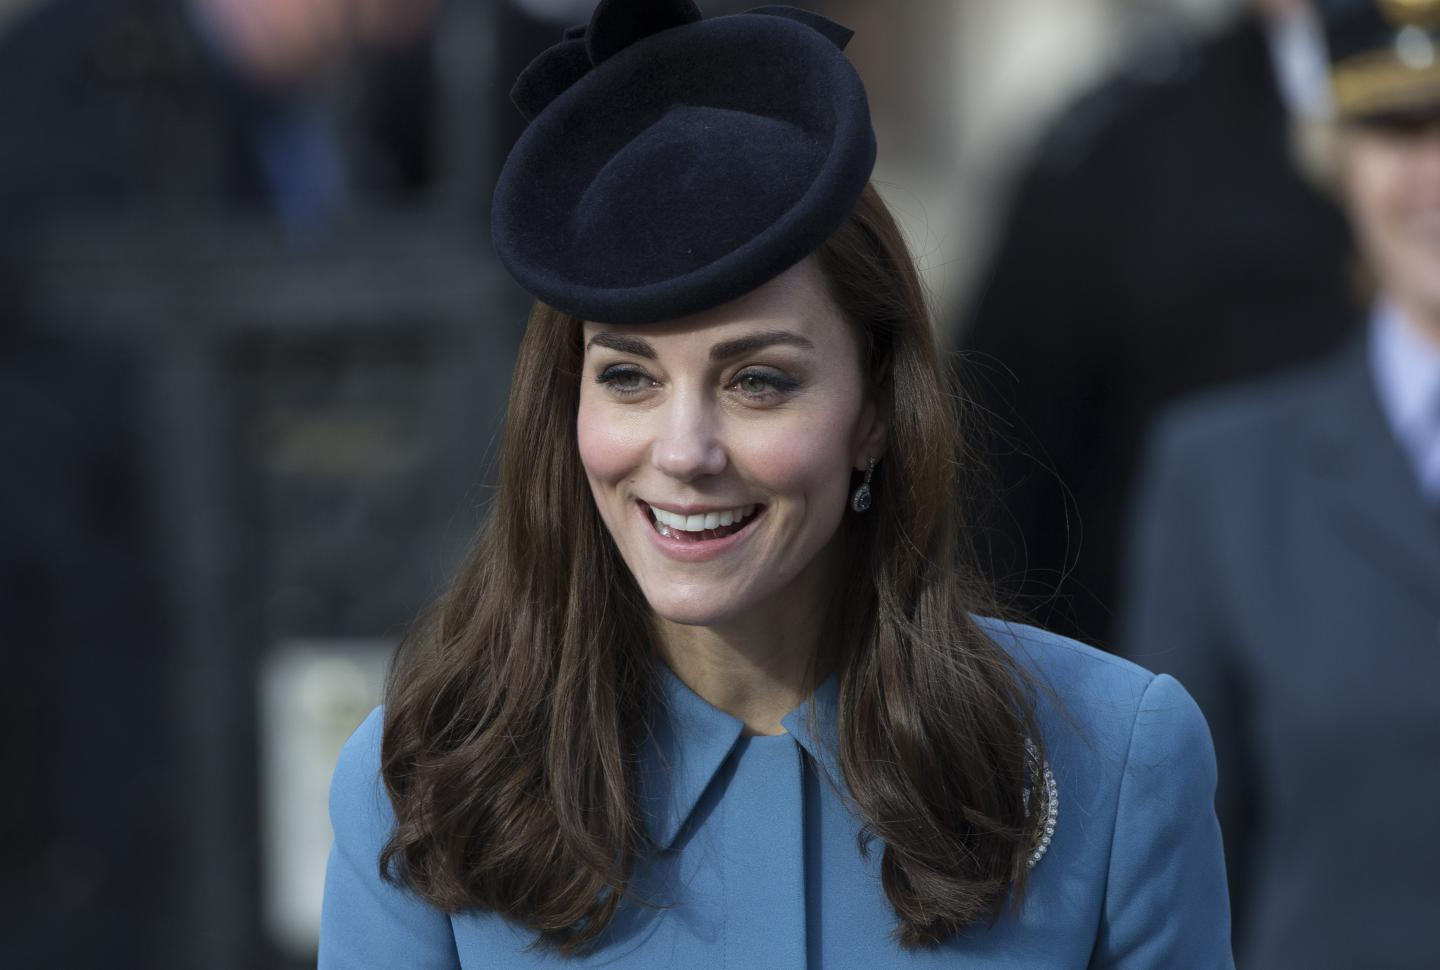 Kate Middleton Wallpaper 12   1440 X 970 stmednet 1440x970